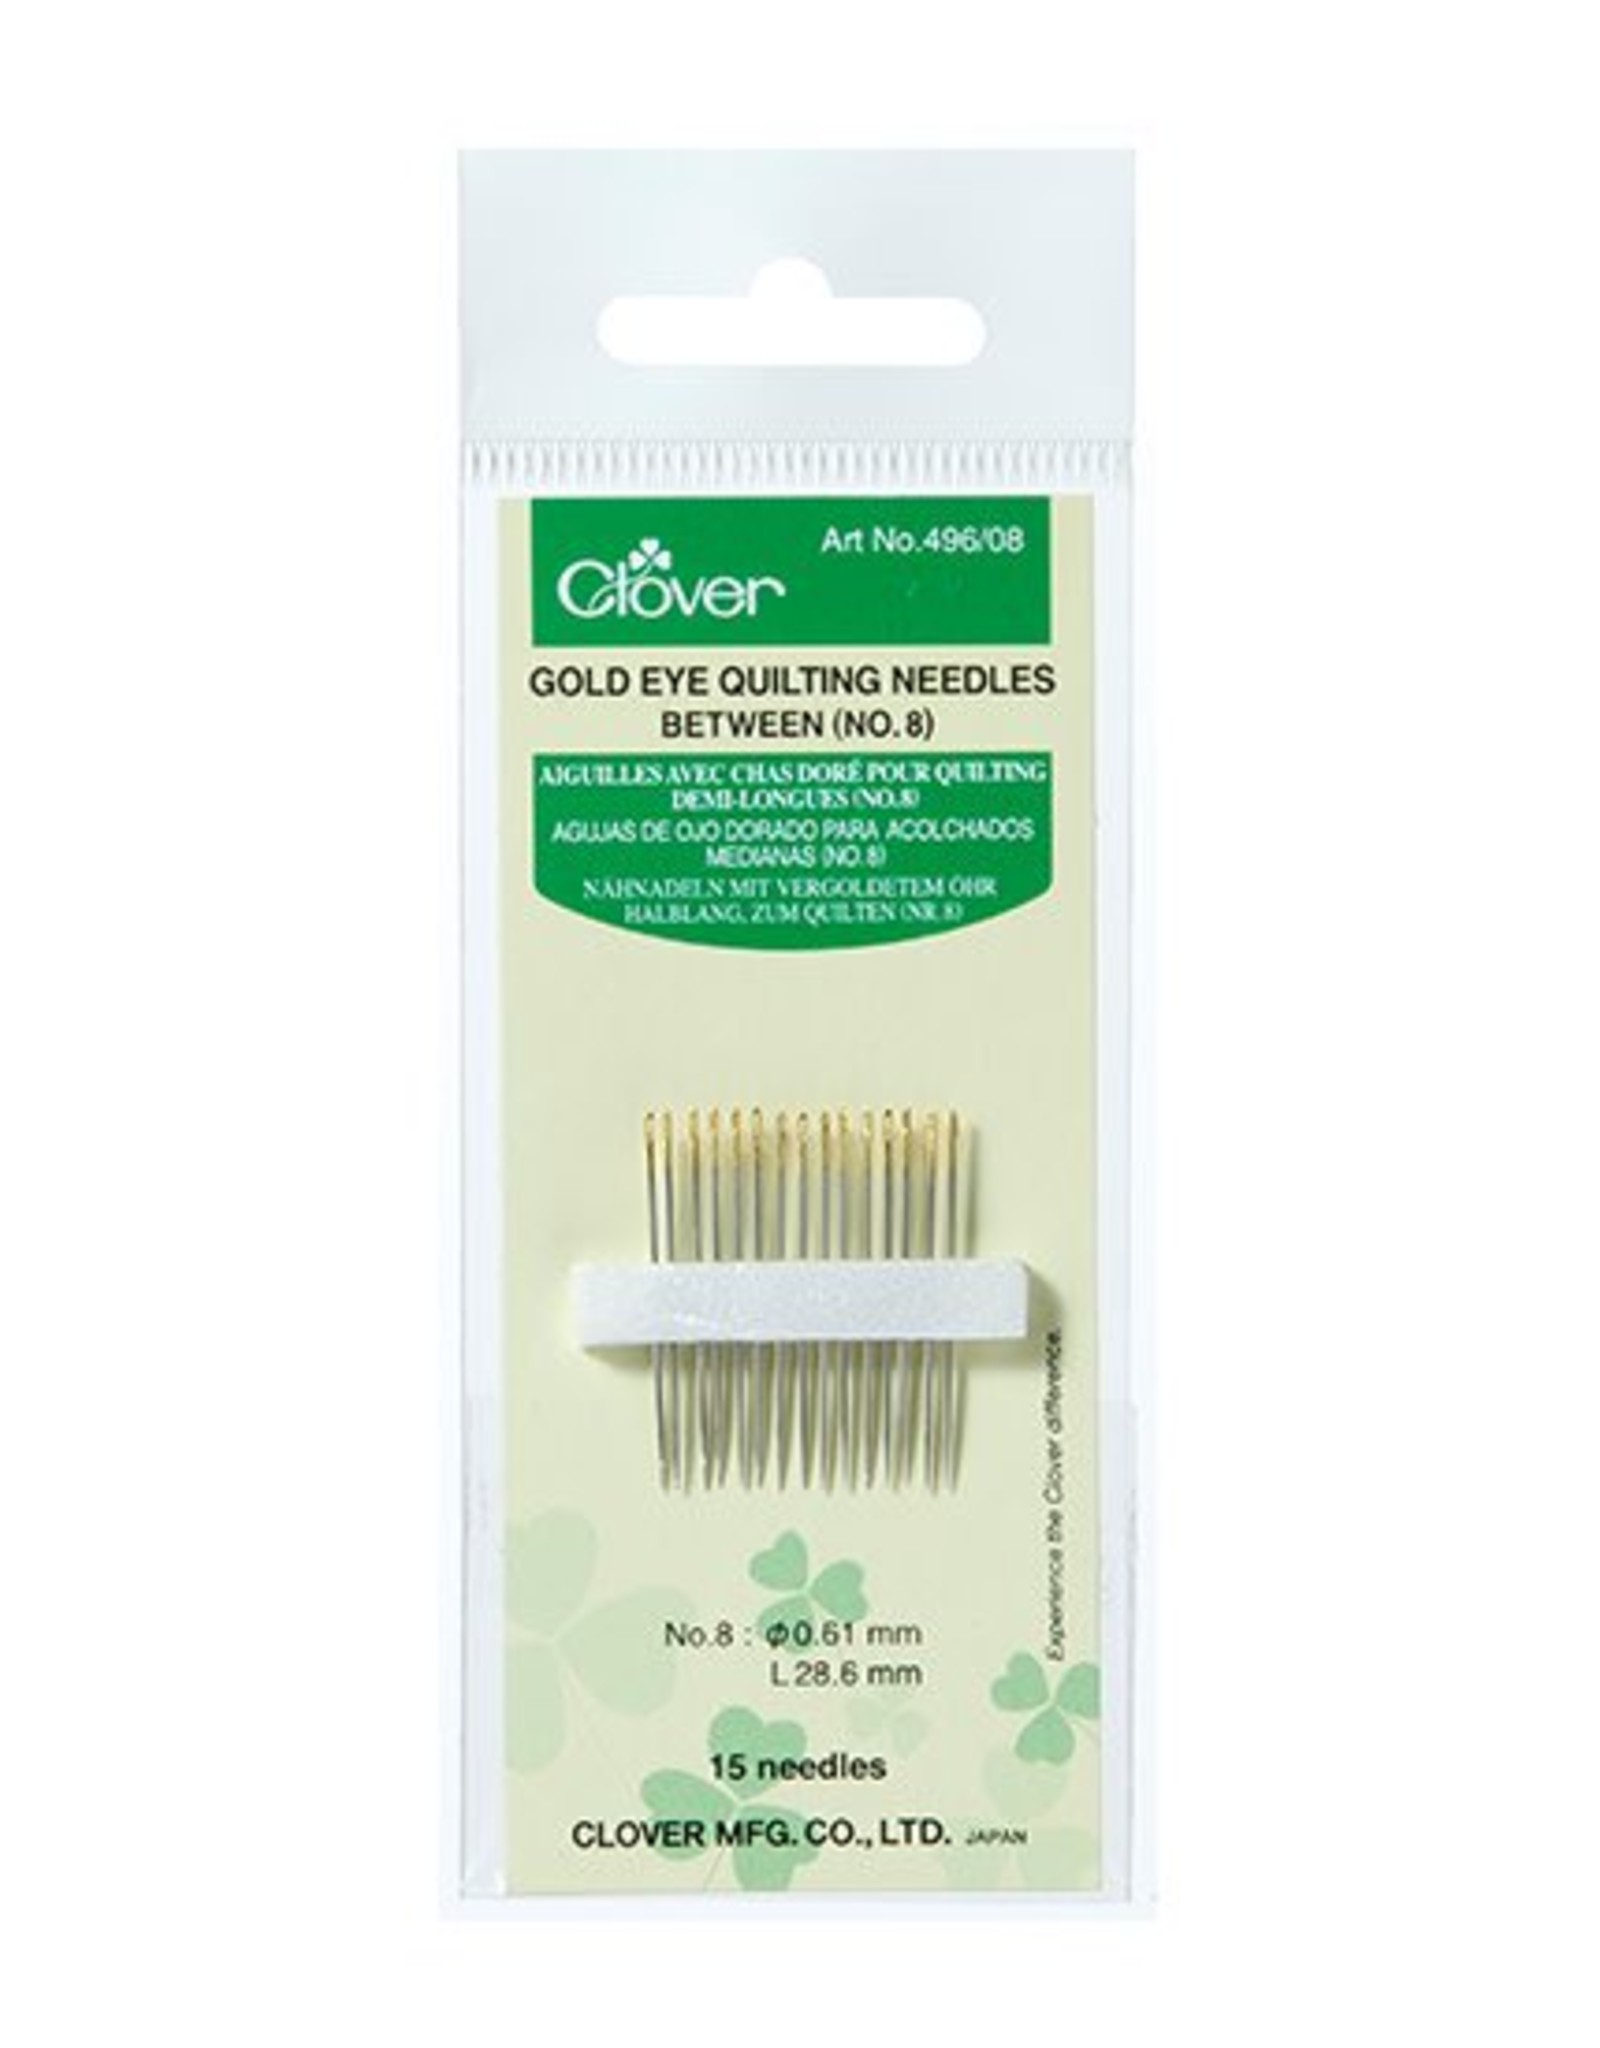 Clover Gold Eye Quilting Needles no. 8